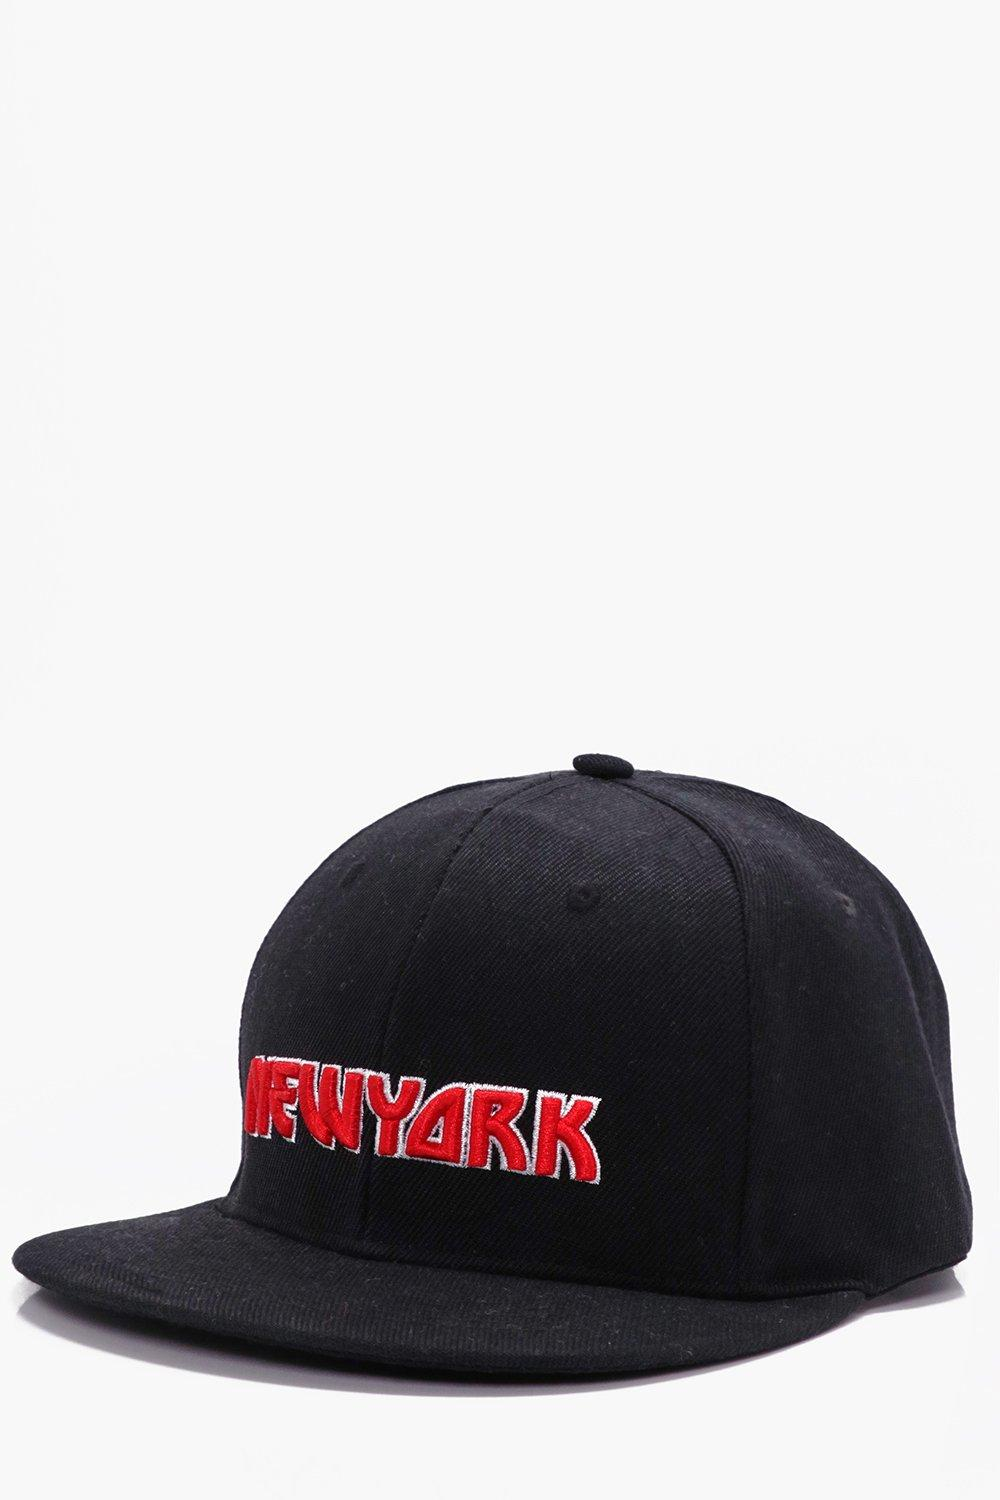 New York Embroidered Snap Back - black - Black New